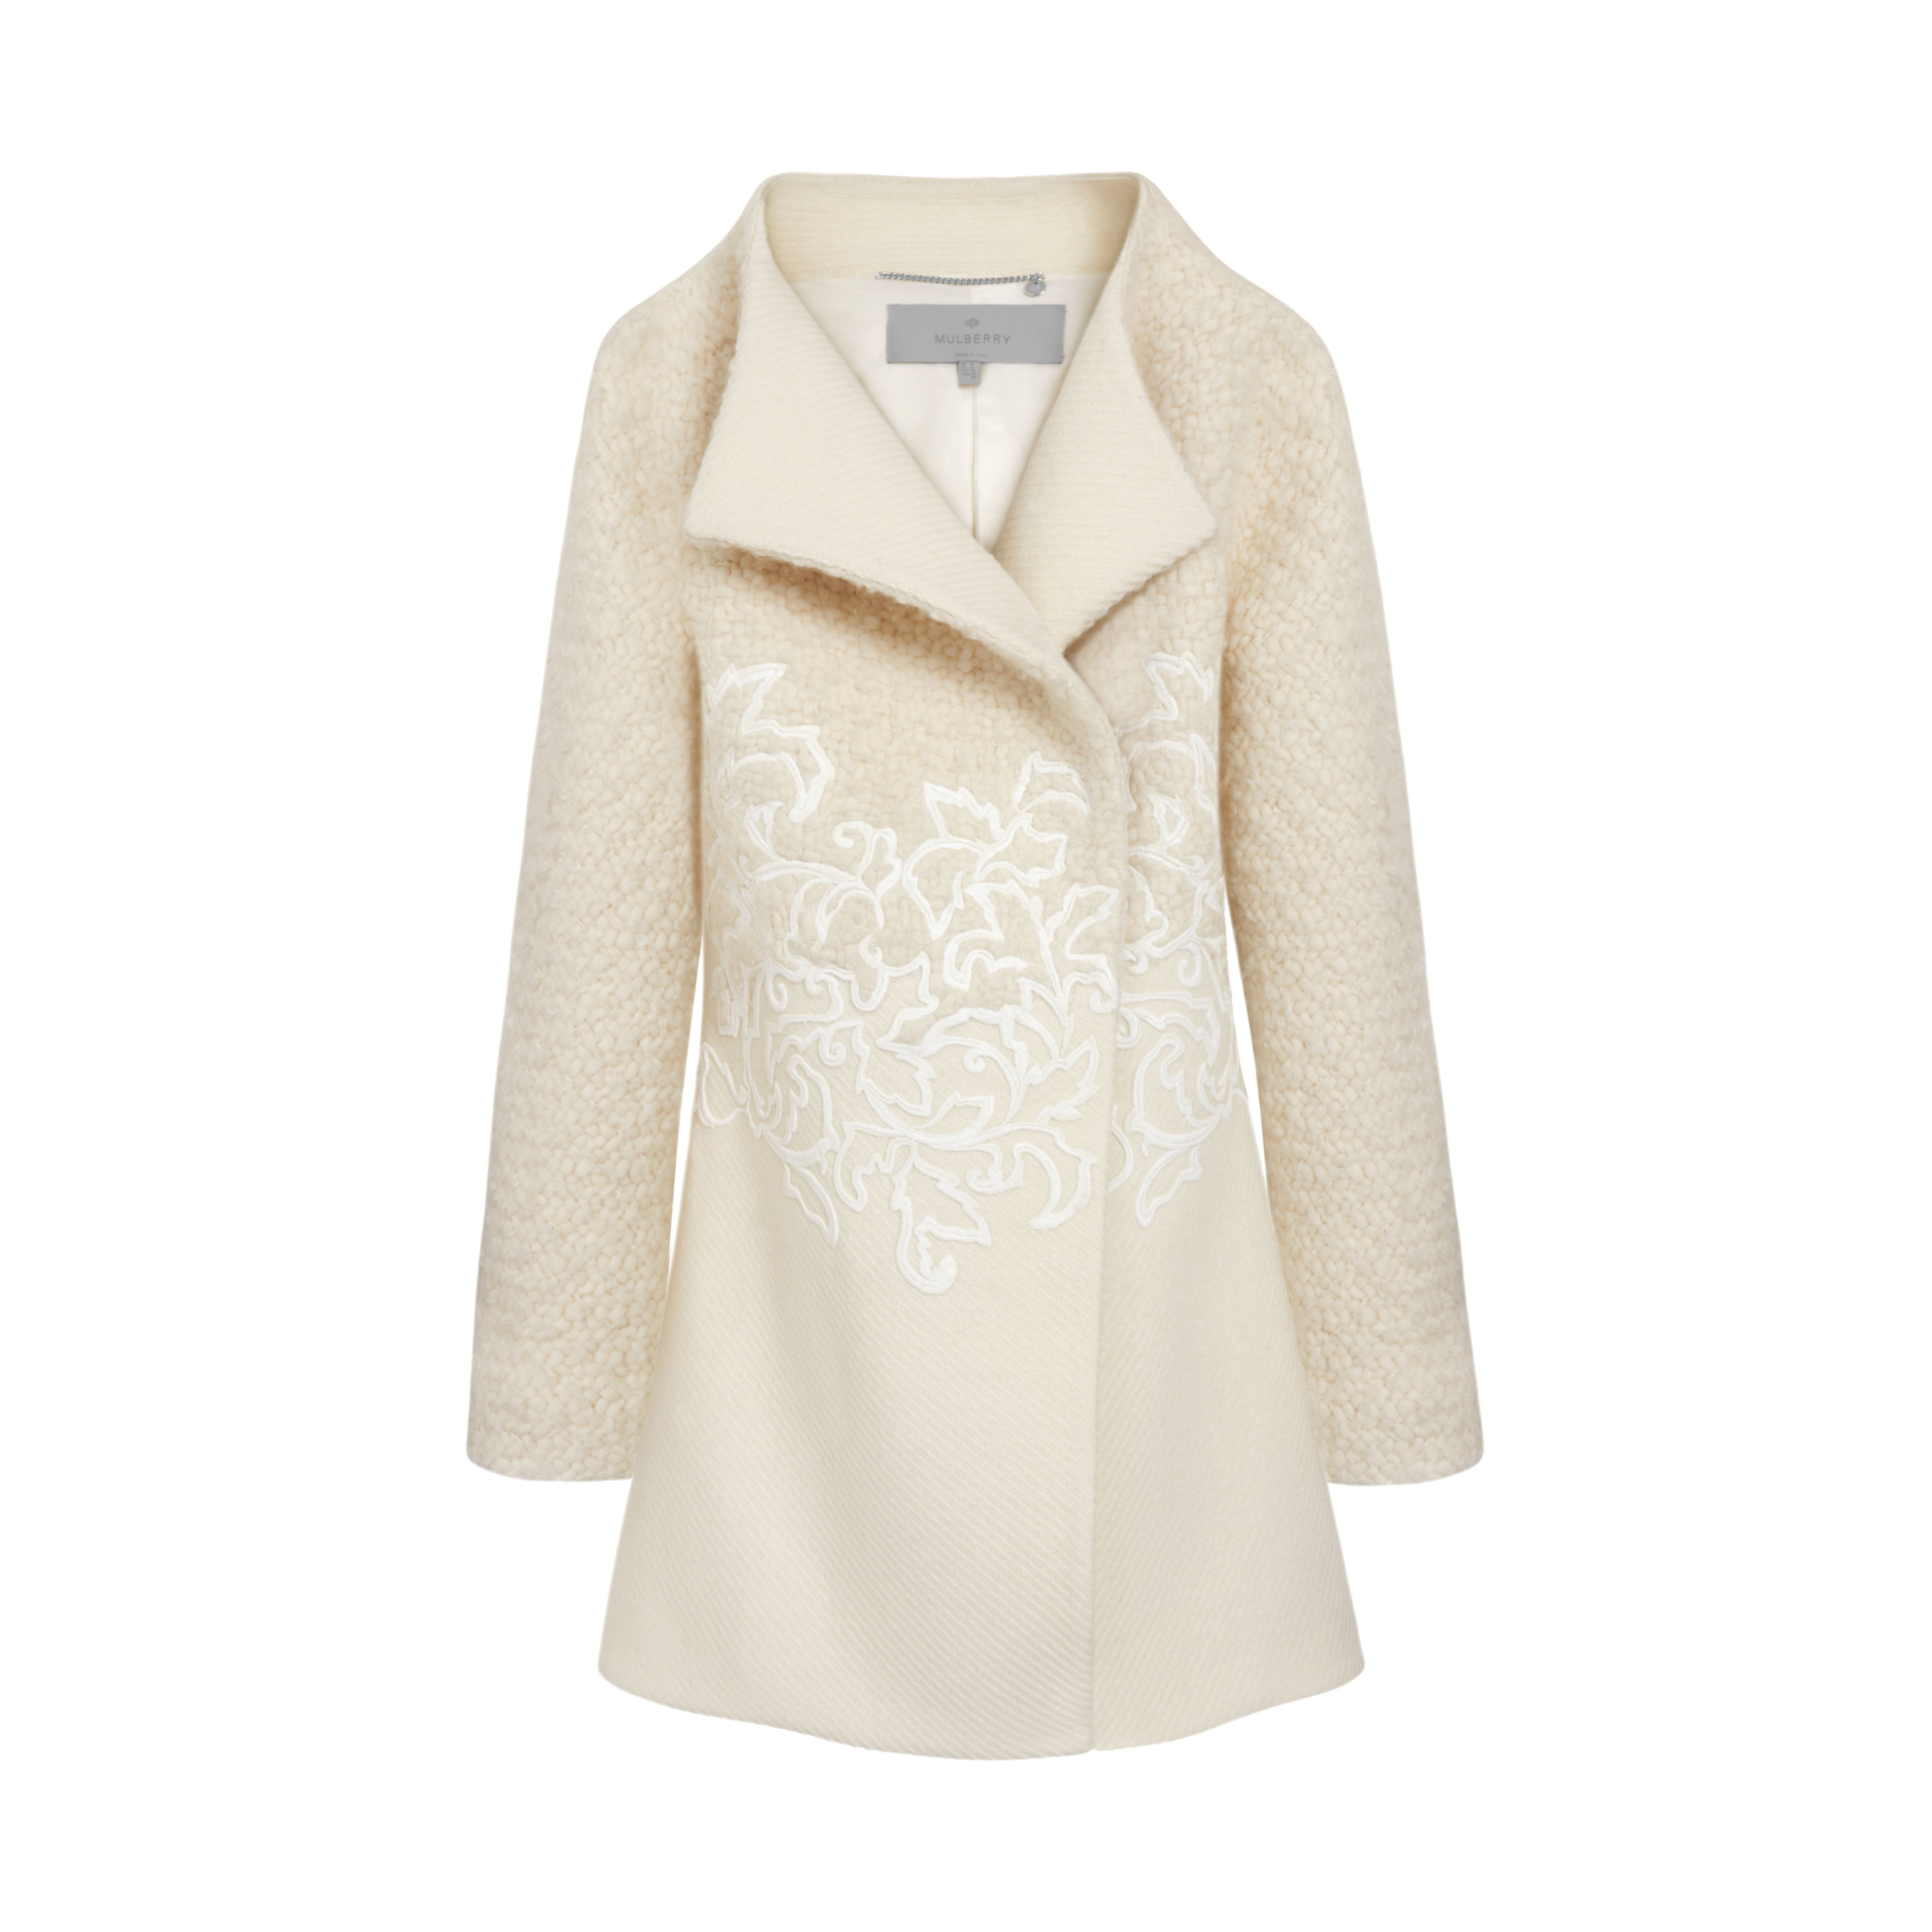 Mulberry Embroidered Fitted Dixter Coat in Natural   Lyst